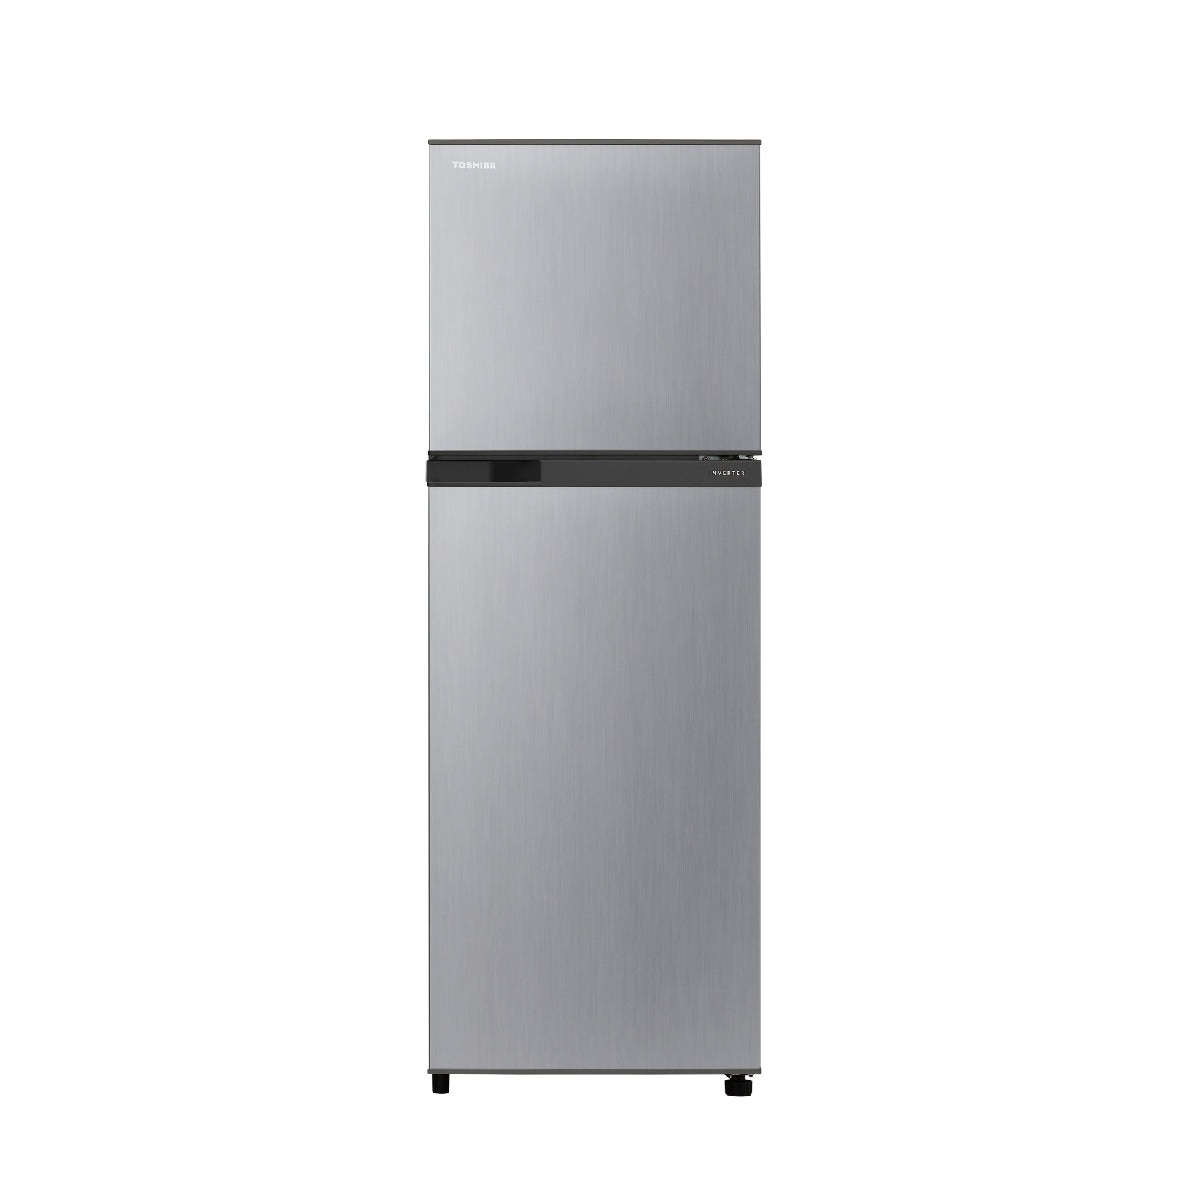 Toshiba Double Door Refrigerator 250 Ltr - GR-A29US(S)